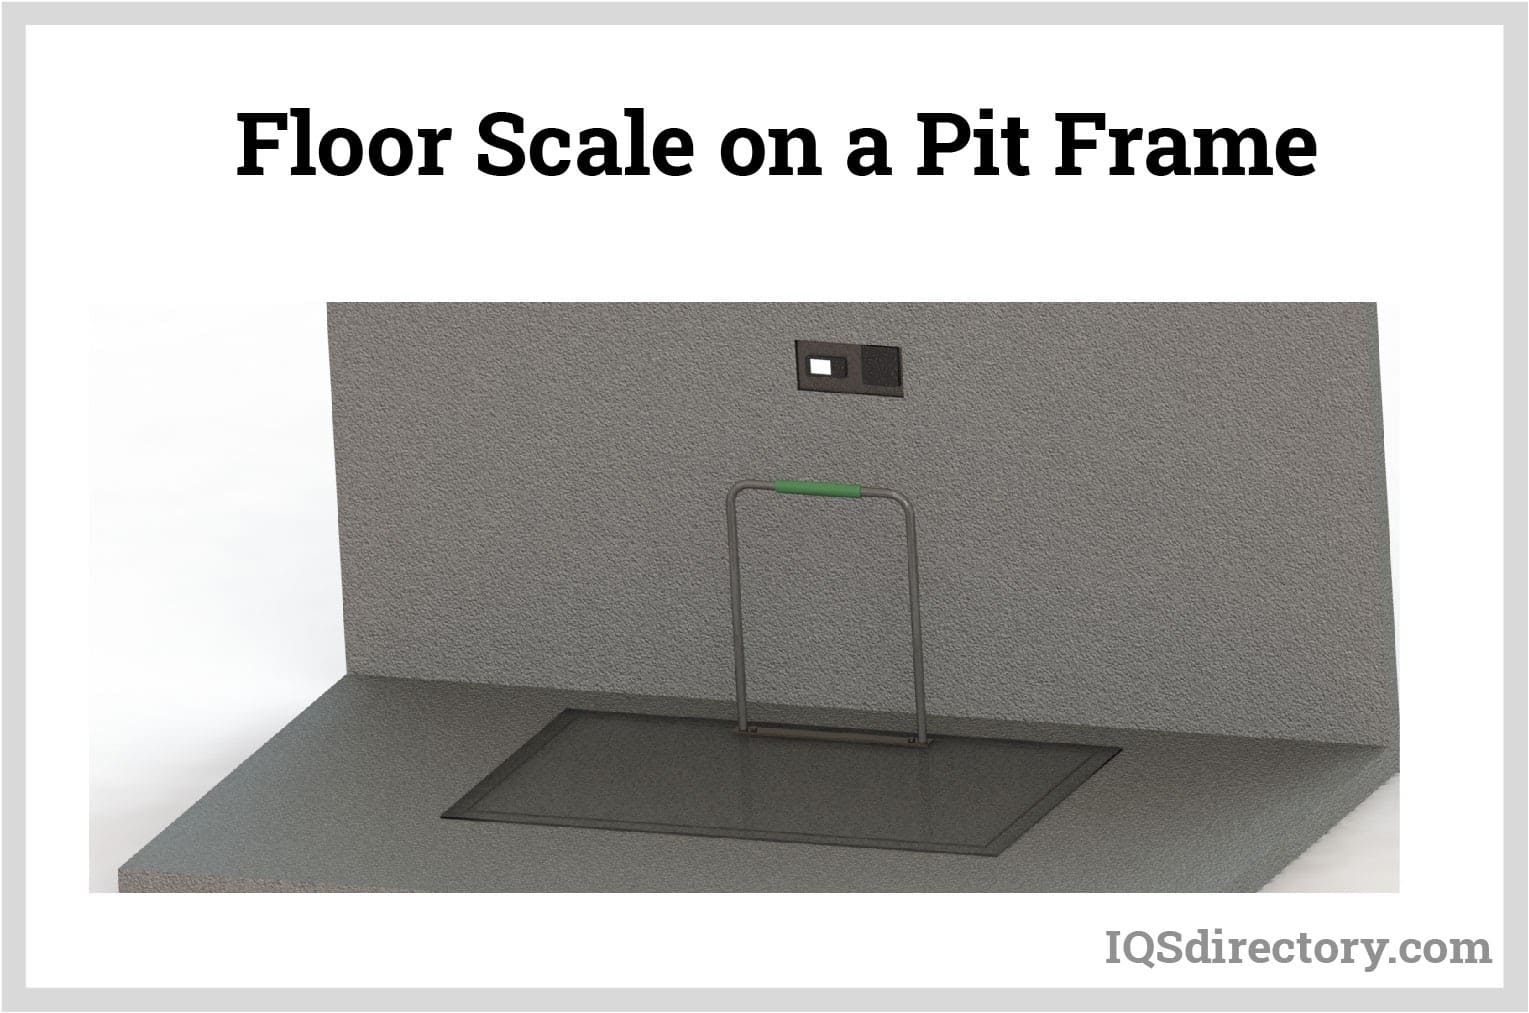 Floor Scale on a Pit Frame